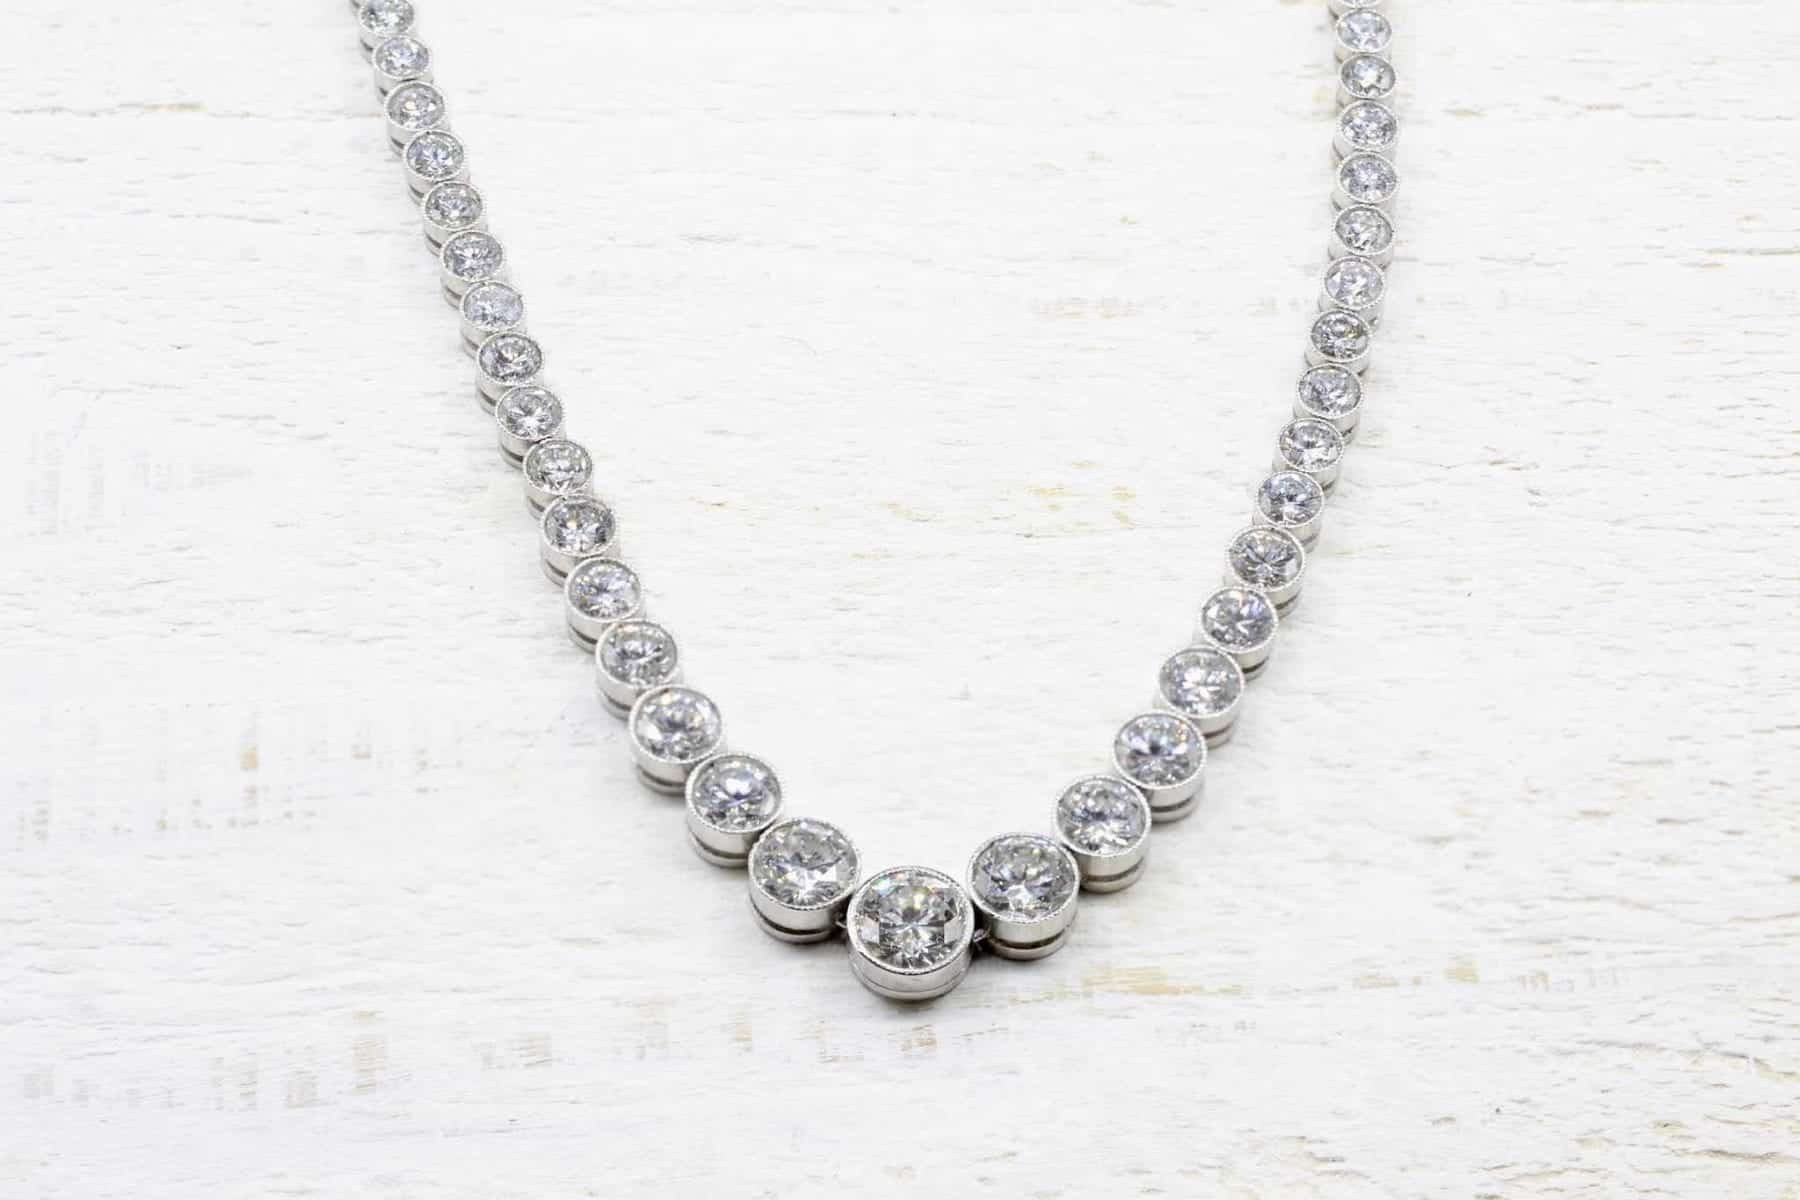 Collier rivière de diamants en platine